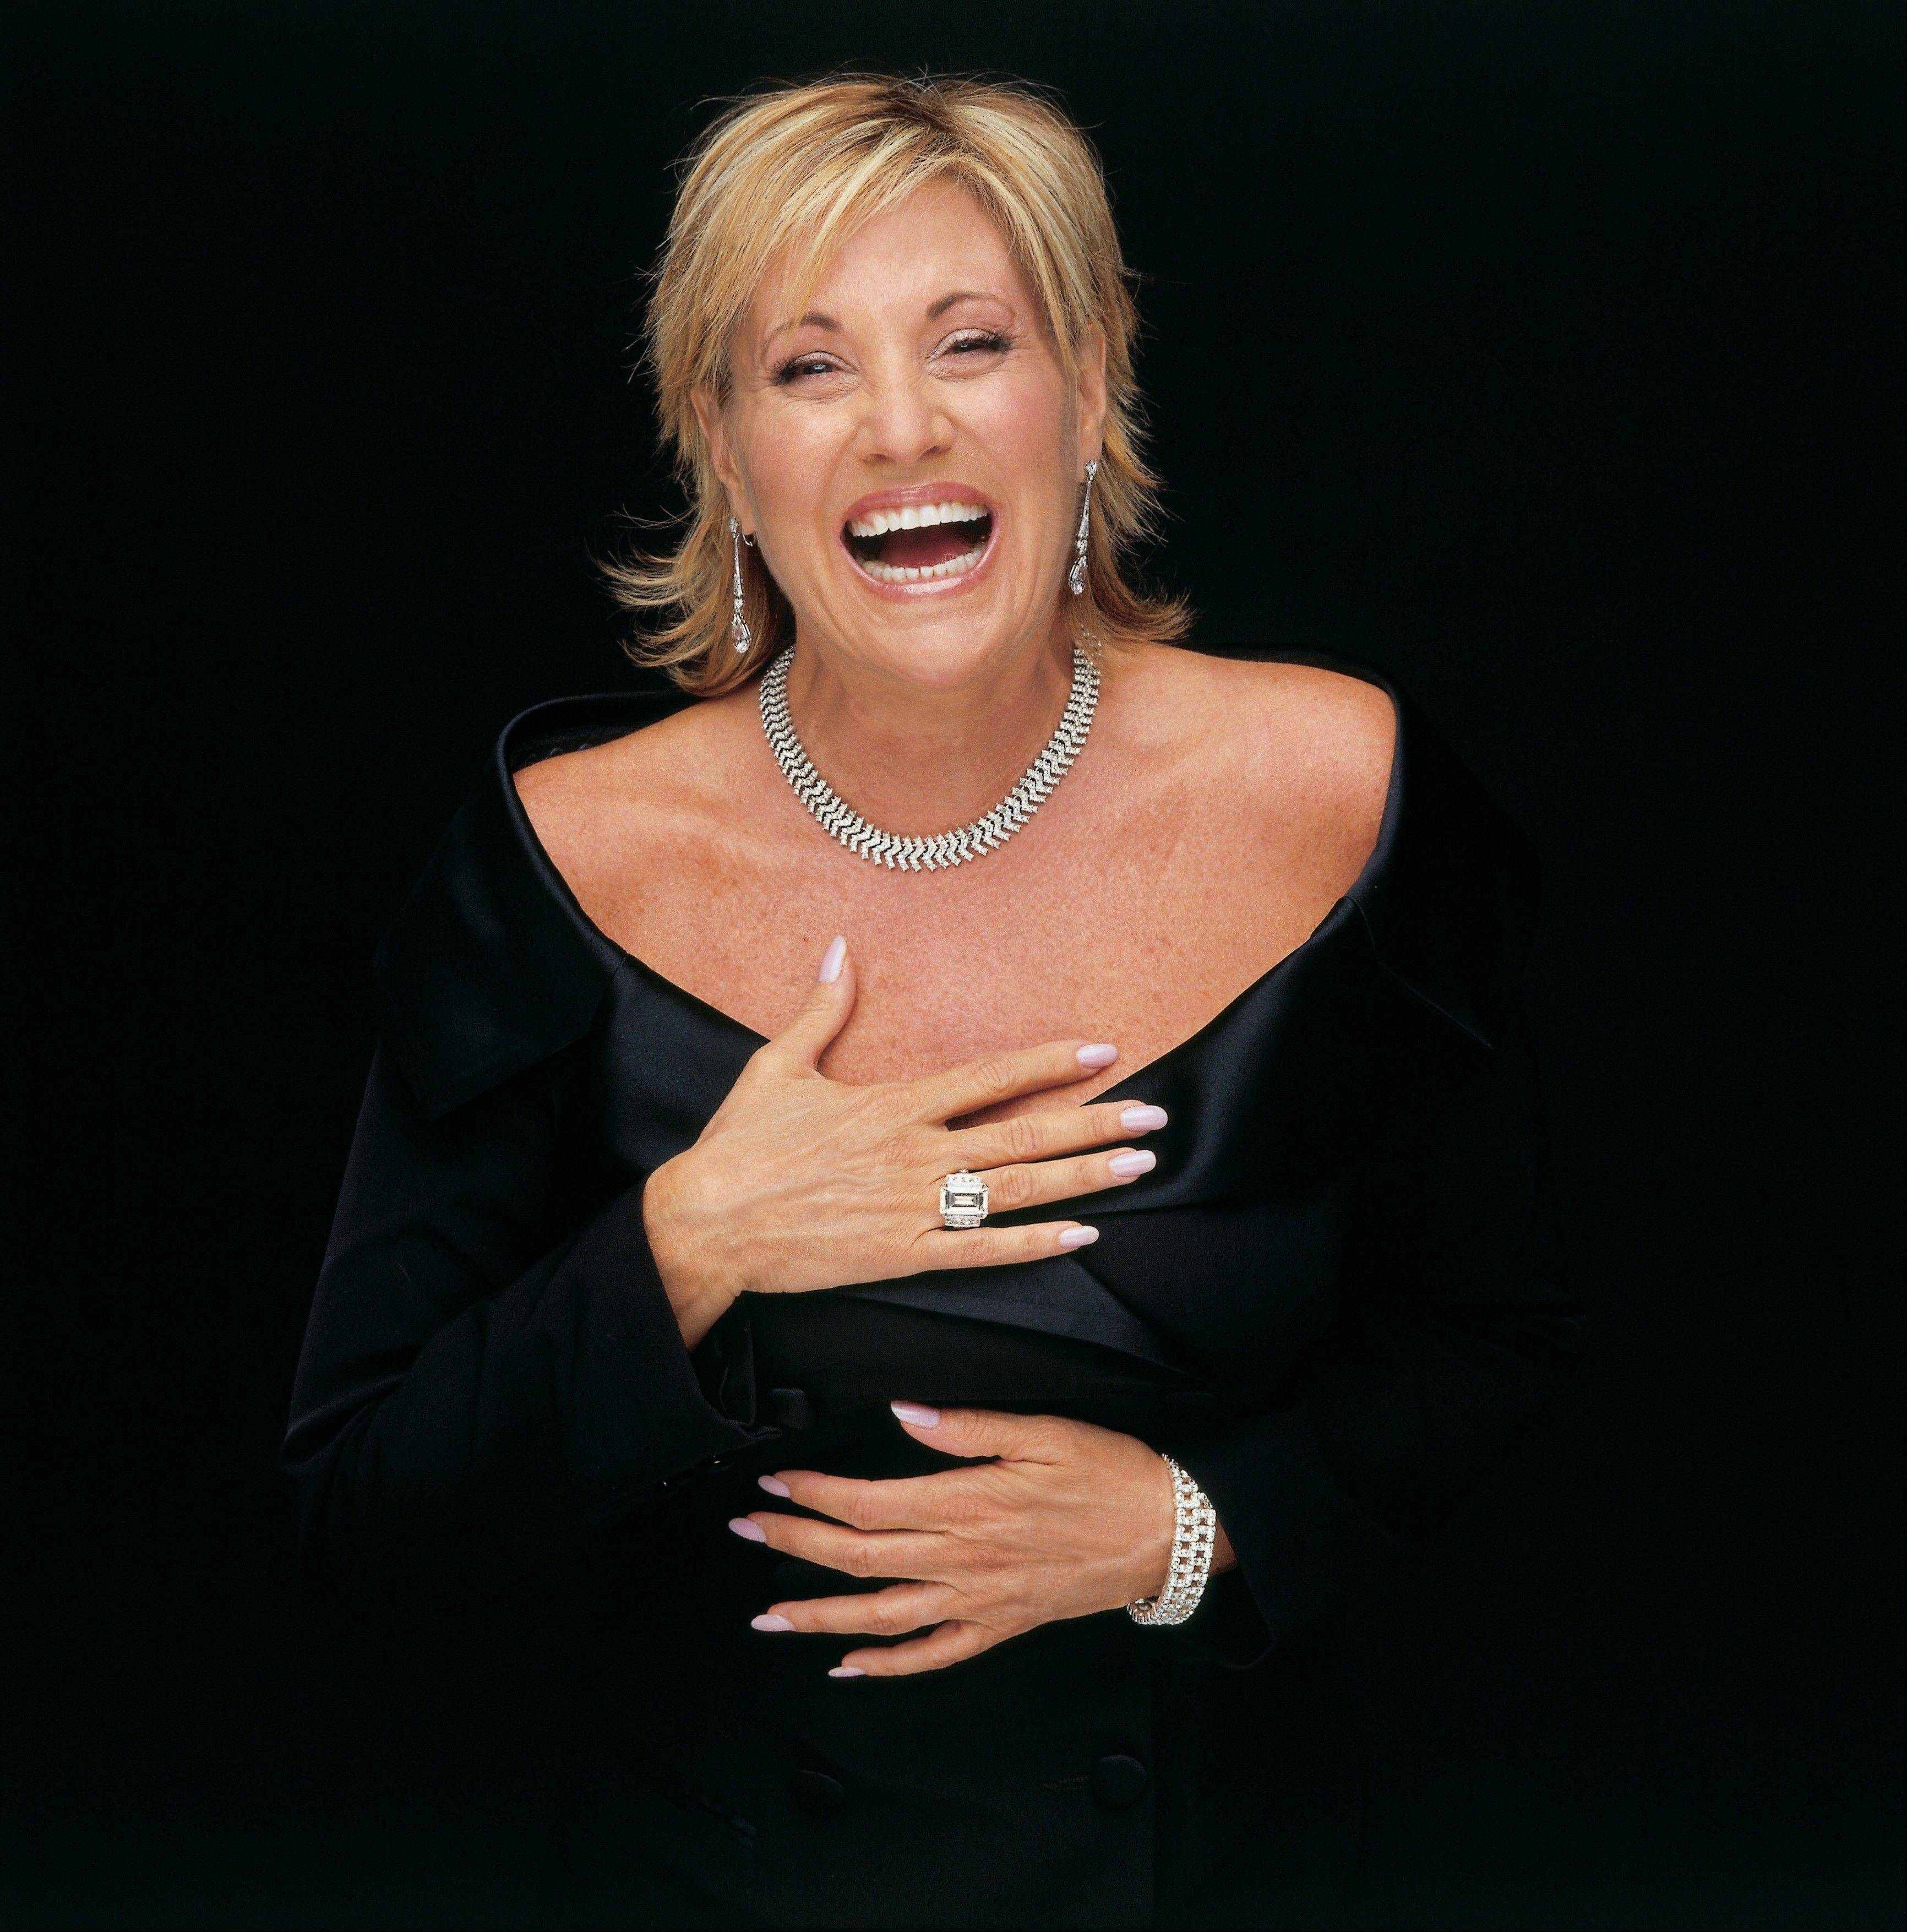 Lorna Luft, the daughter of Judy Garland and Sid Luft, will perform Sunday at the Paramount Theatre in Aurora.